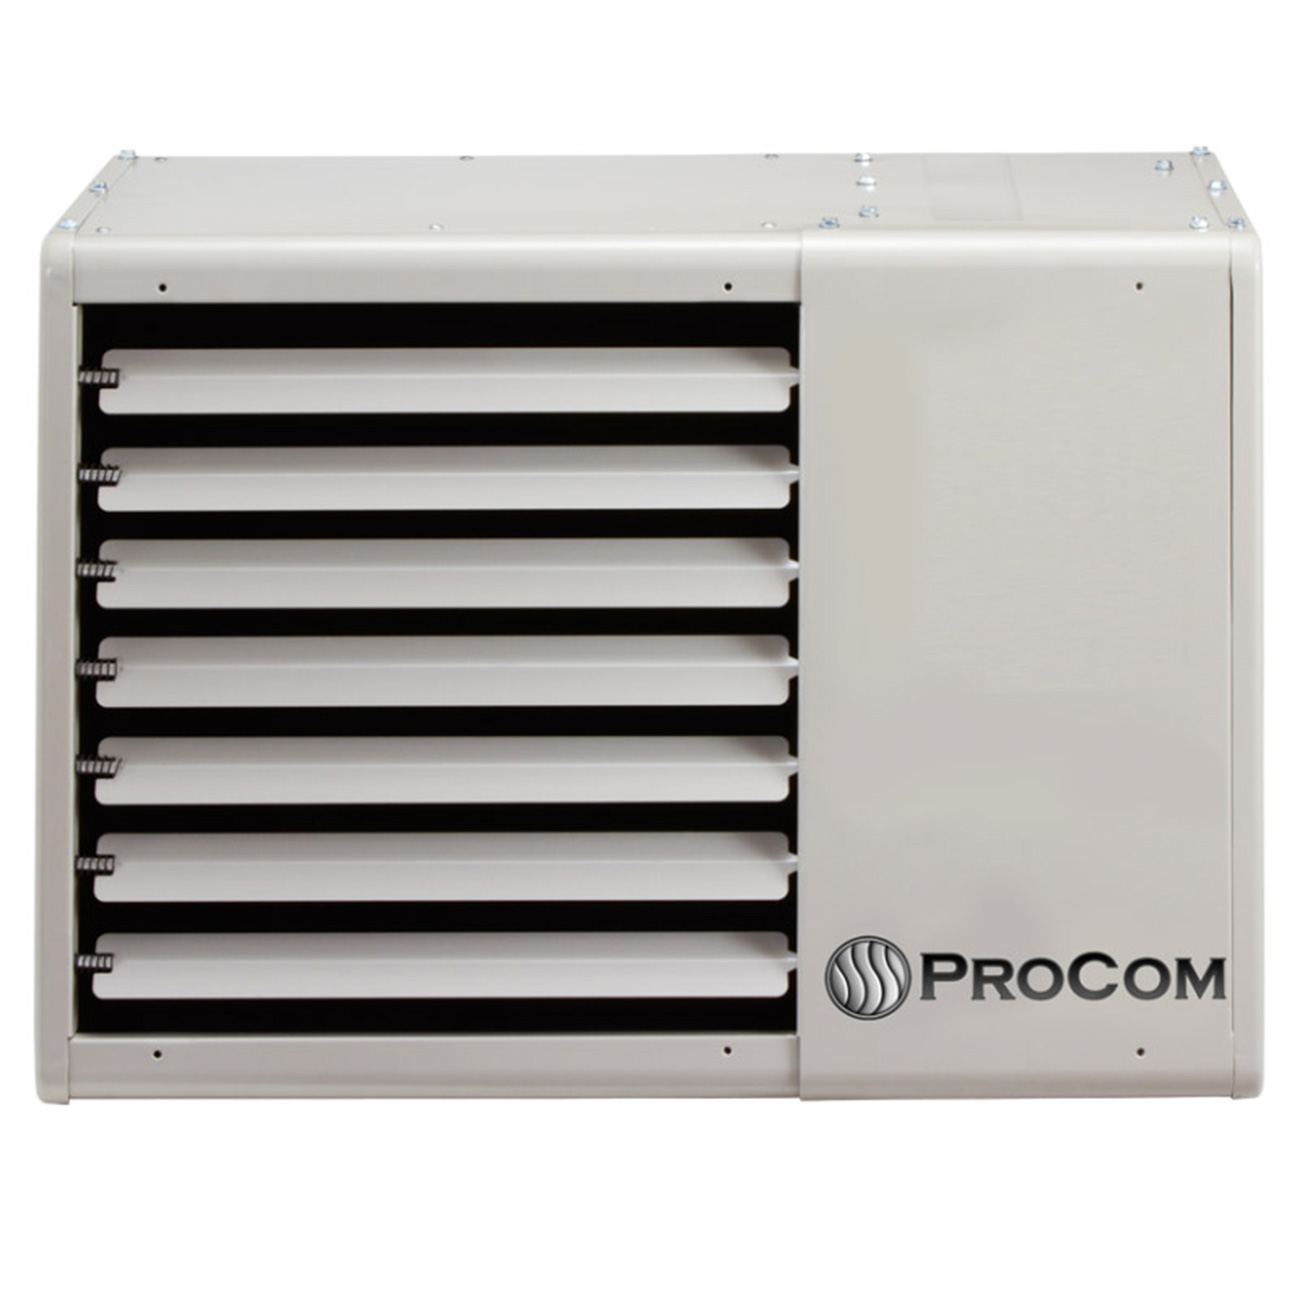 ProCom Vented Garage Heater